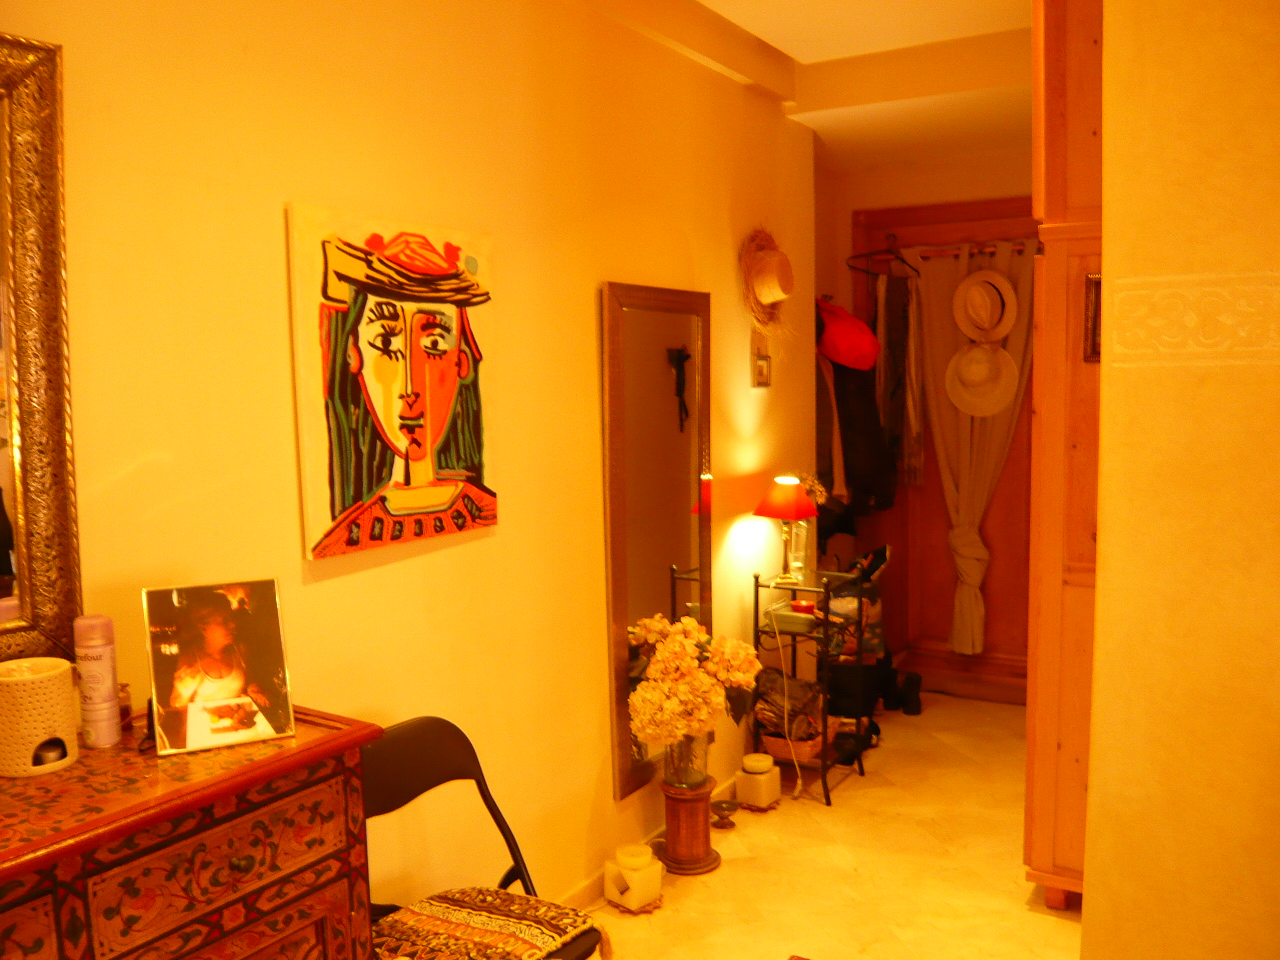 Image appartement en vente Marrakech 0